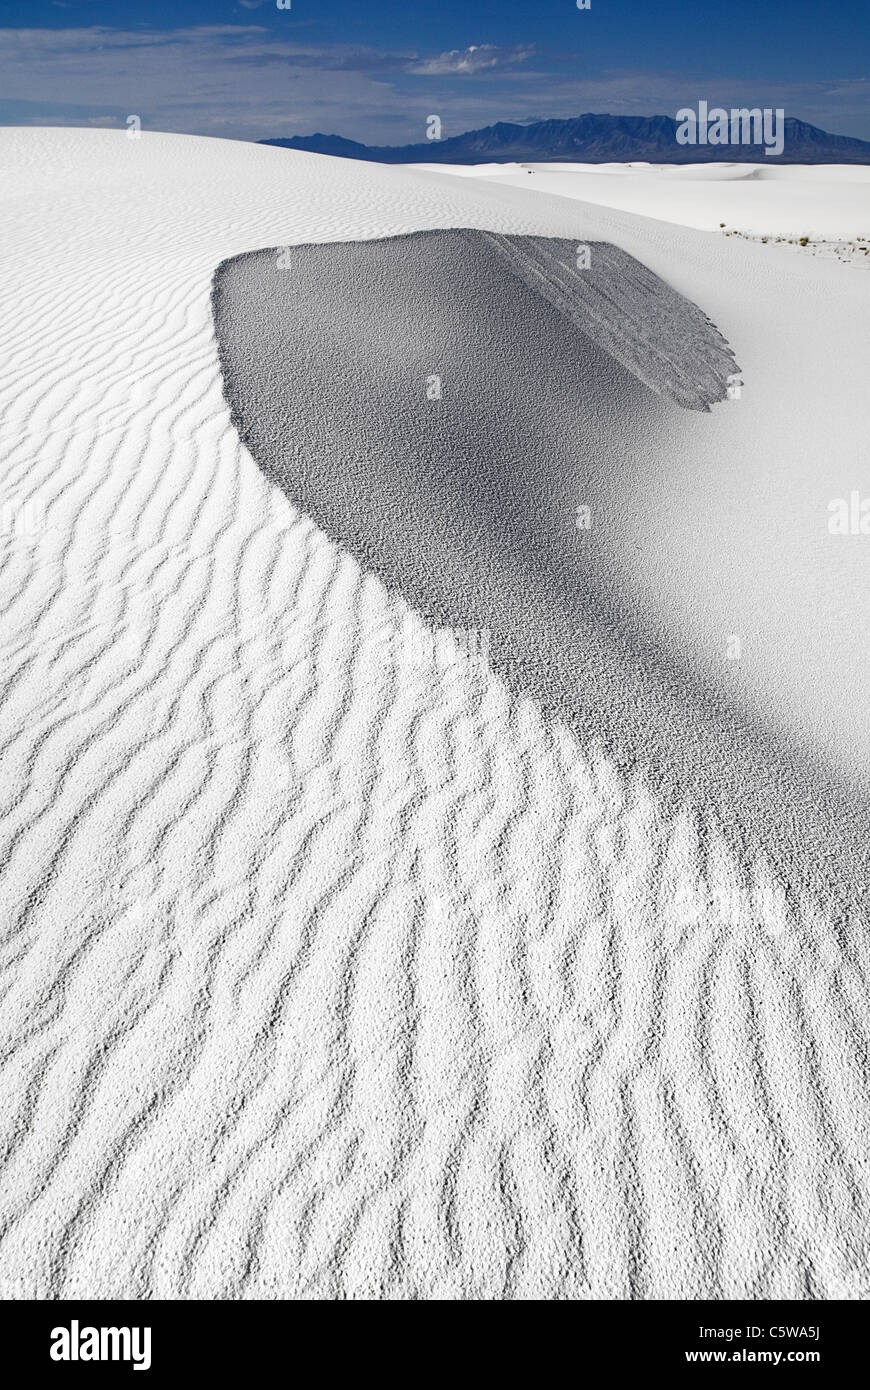 USA, New Mexico, View of white sands national monument - Stock Image